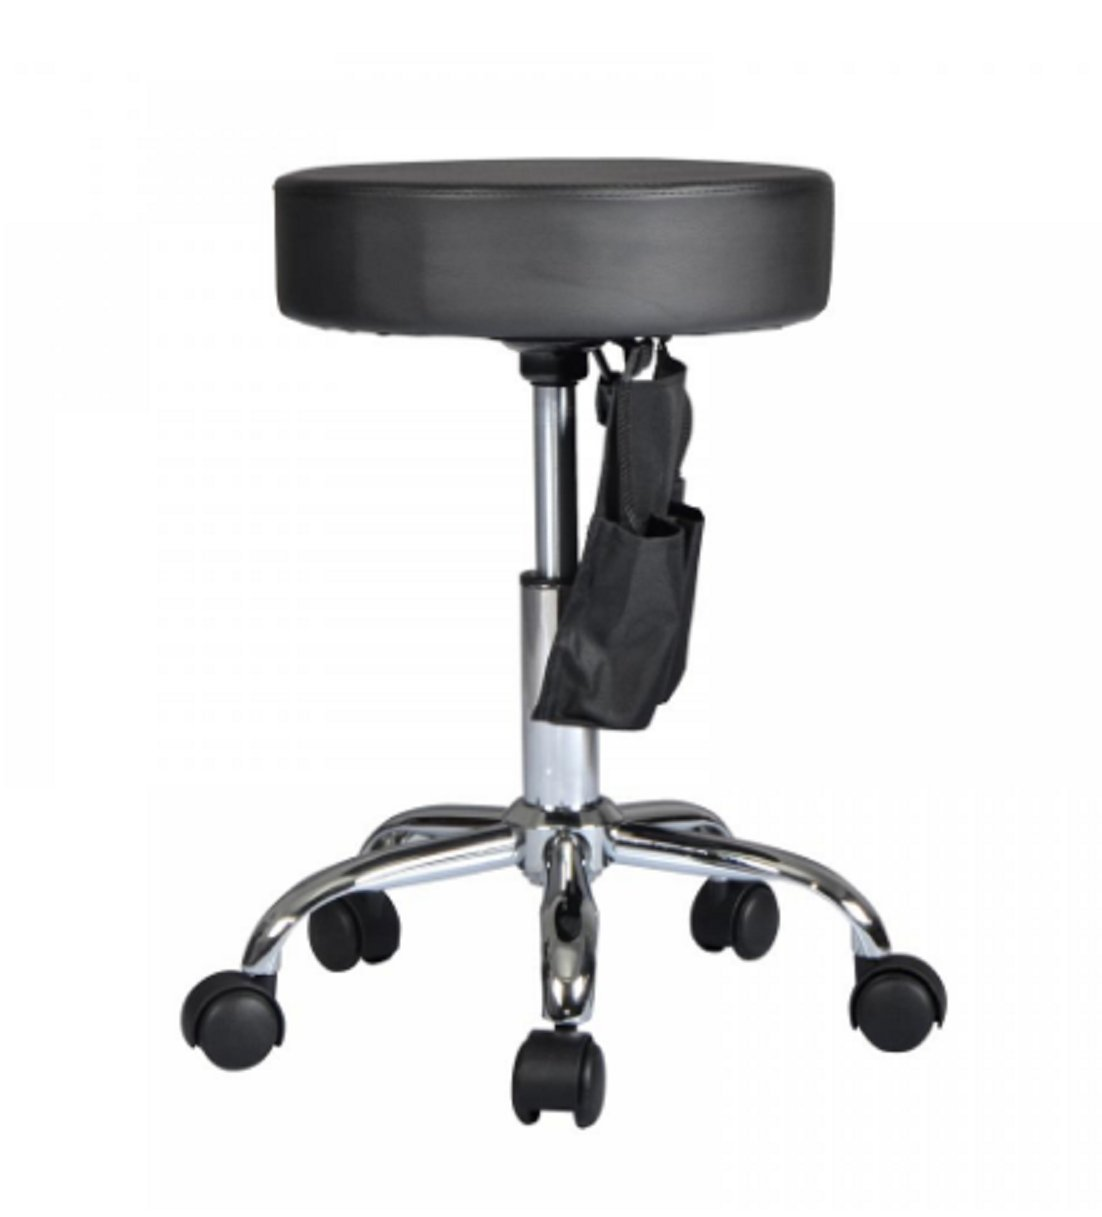 bar stool with wheels. Get Quotations · Stool Hydraulic Back Wheels Adjustable Rolling Swivel Bar Counter Office Table Dining Chairs With